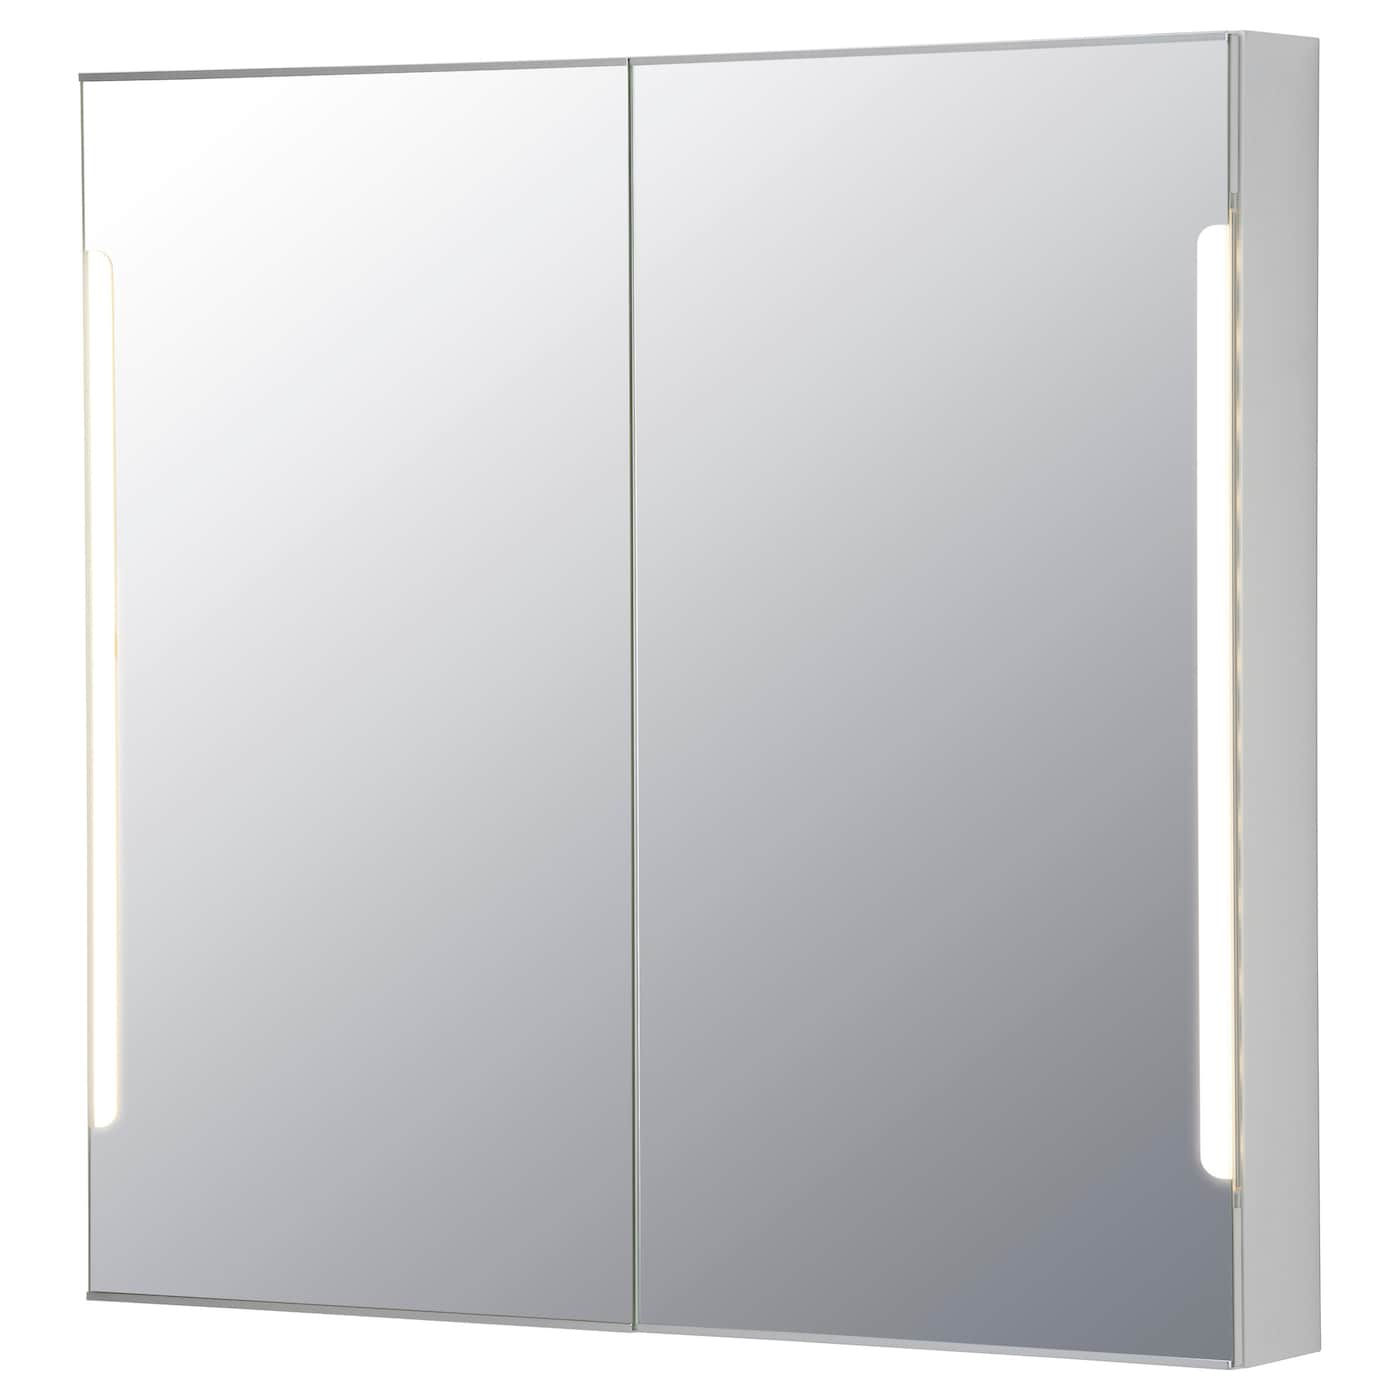 Bathroom wall cabinets ikea ikea storjorm mirror cab 2 doorbuilt in lighting aloadofball